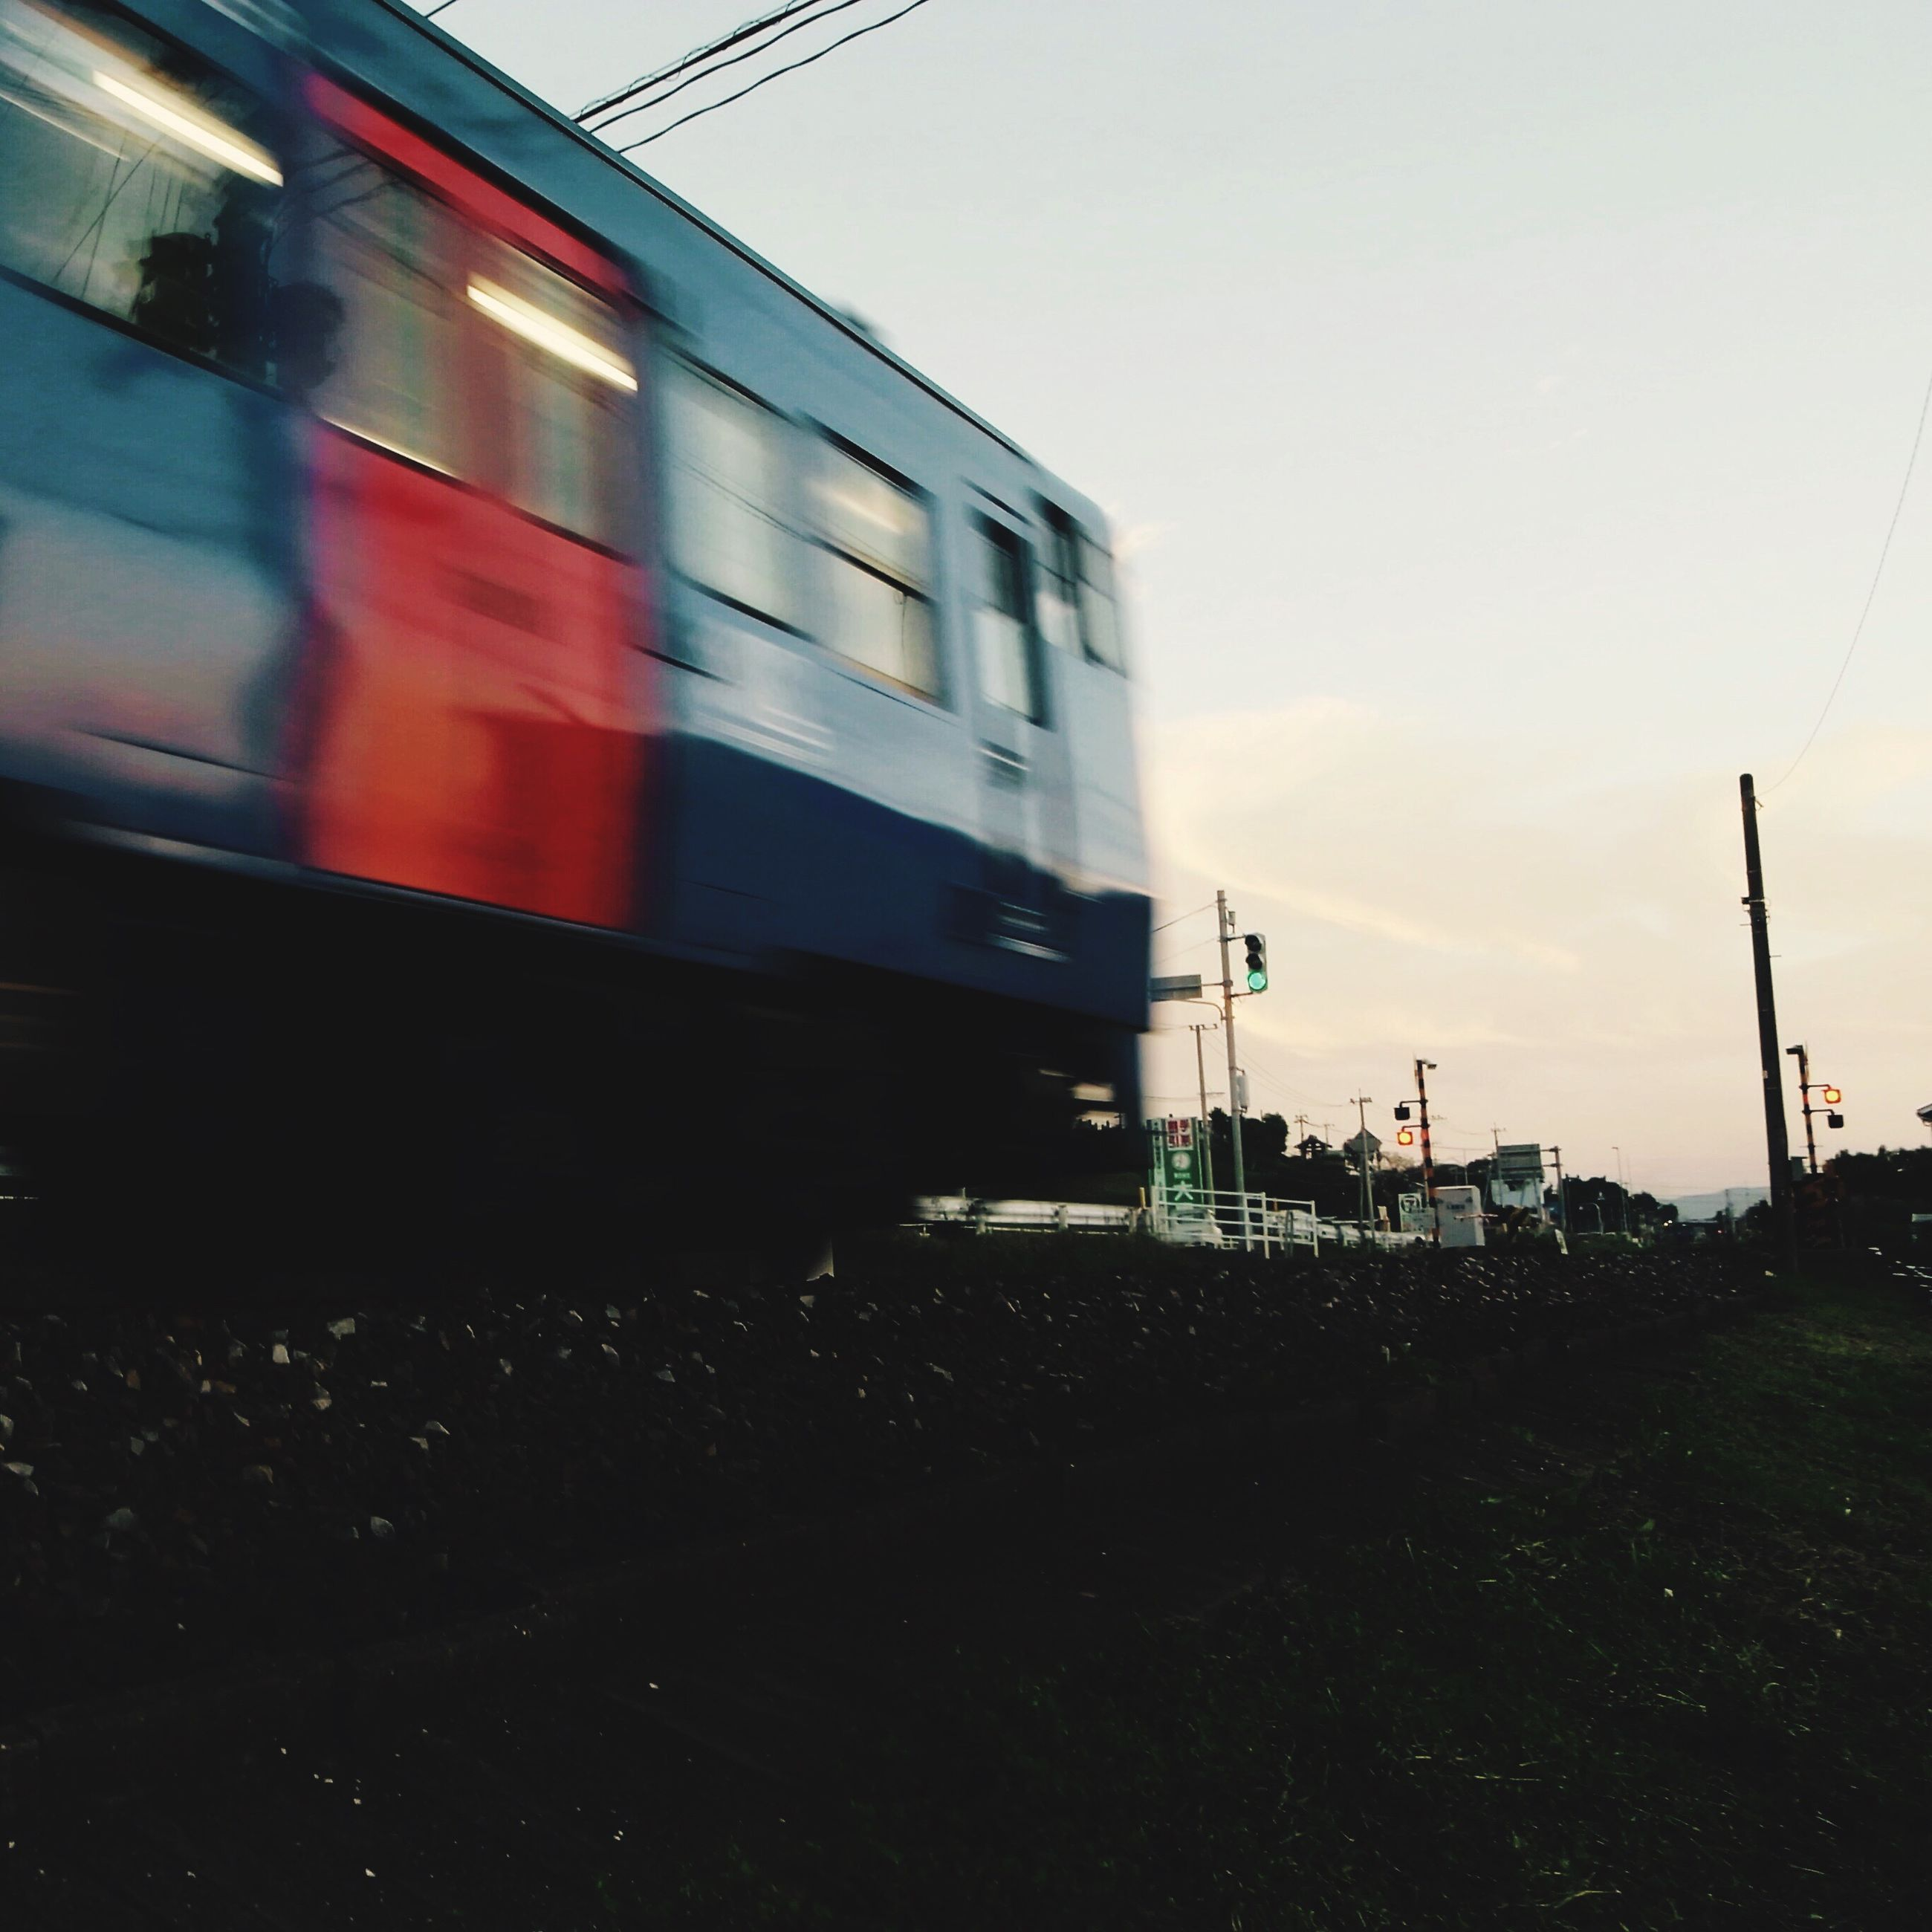 transportation, motion, outdoors, mode of transport, no people, sky, blurred motion, speed, day